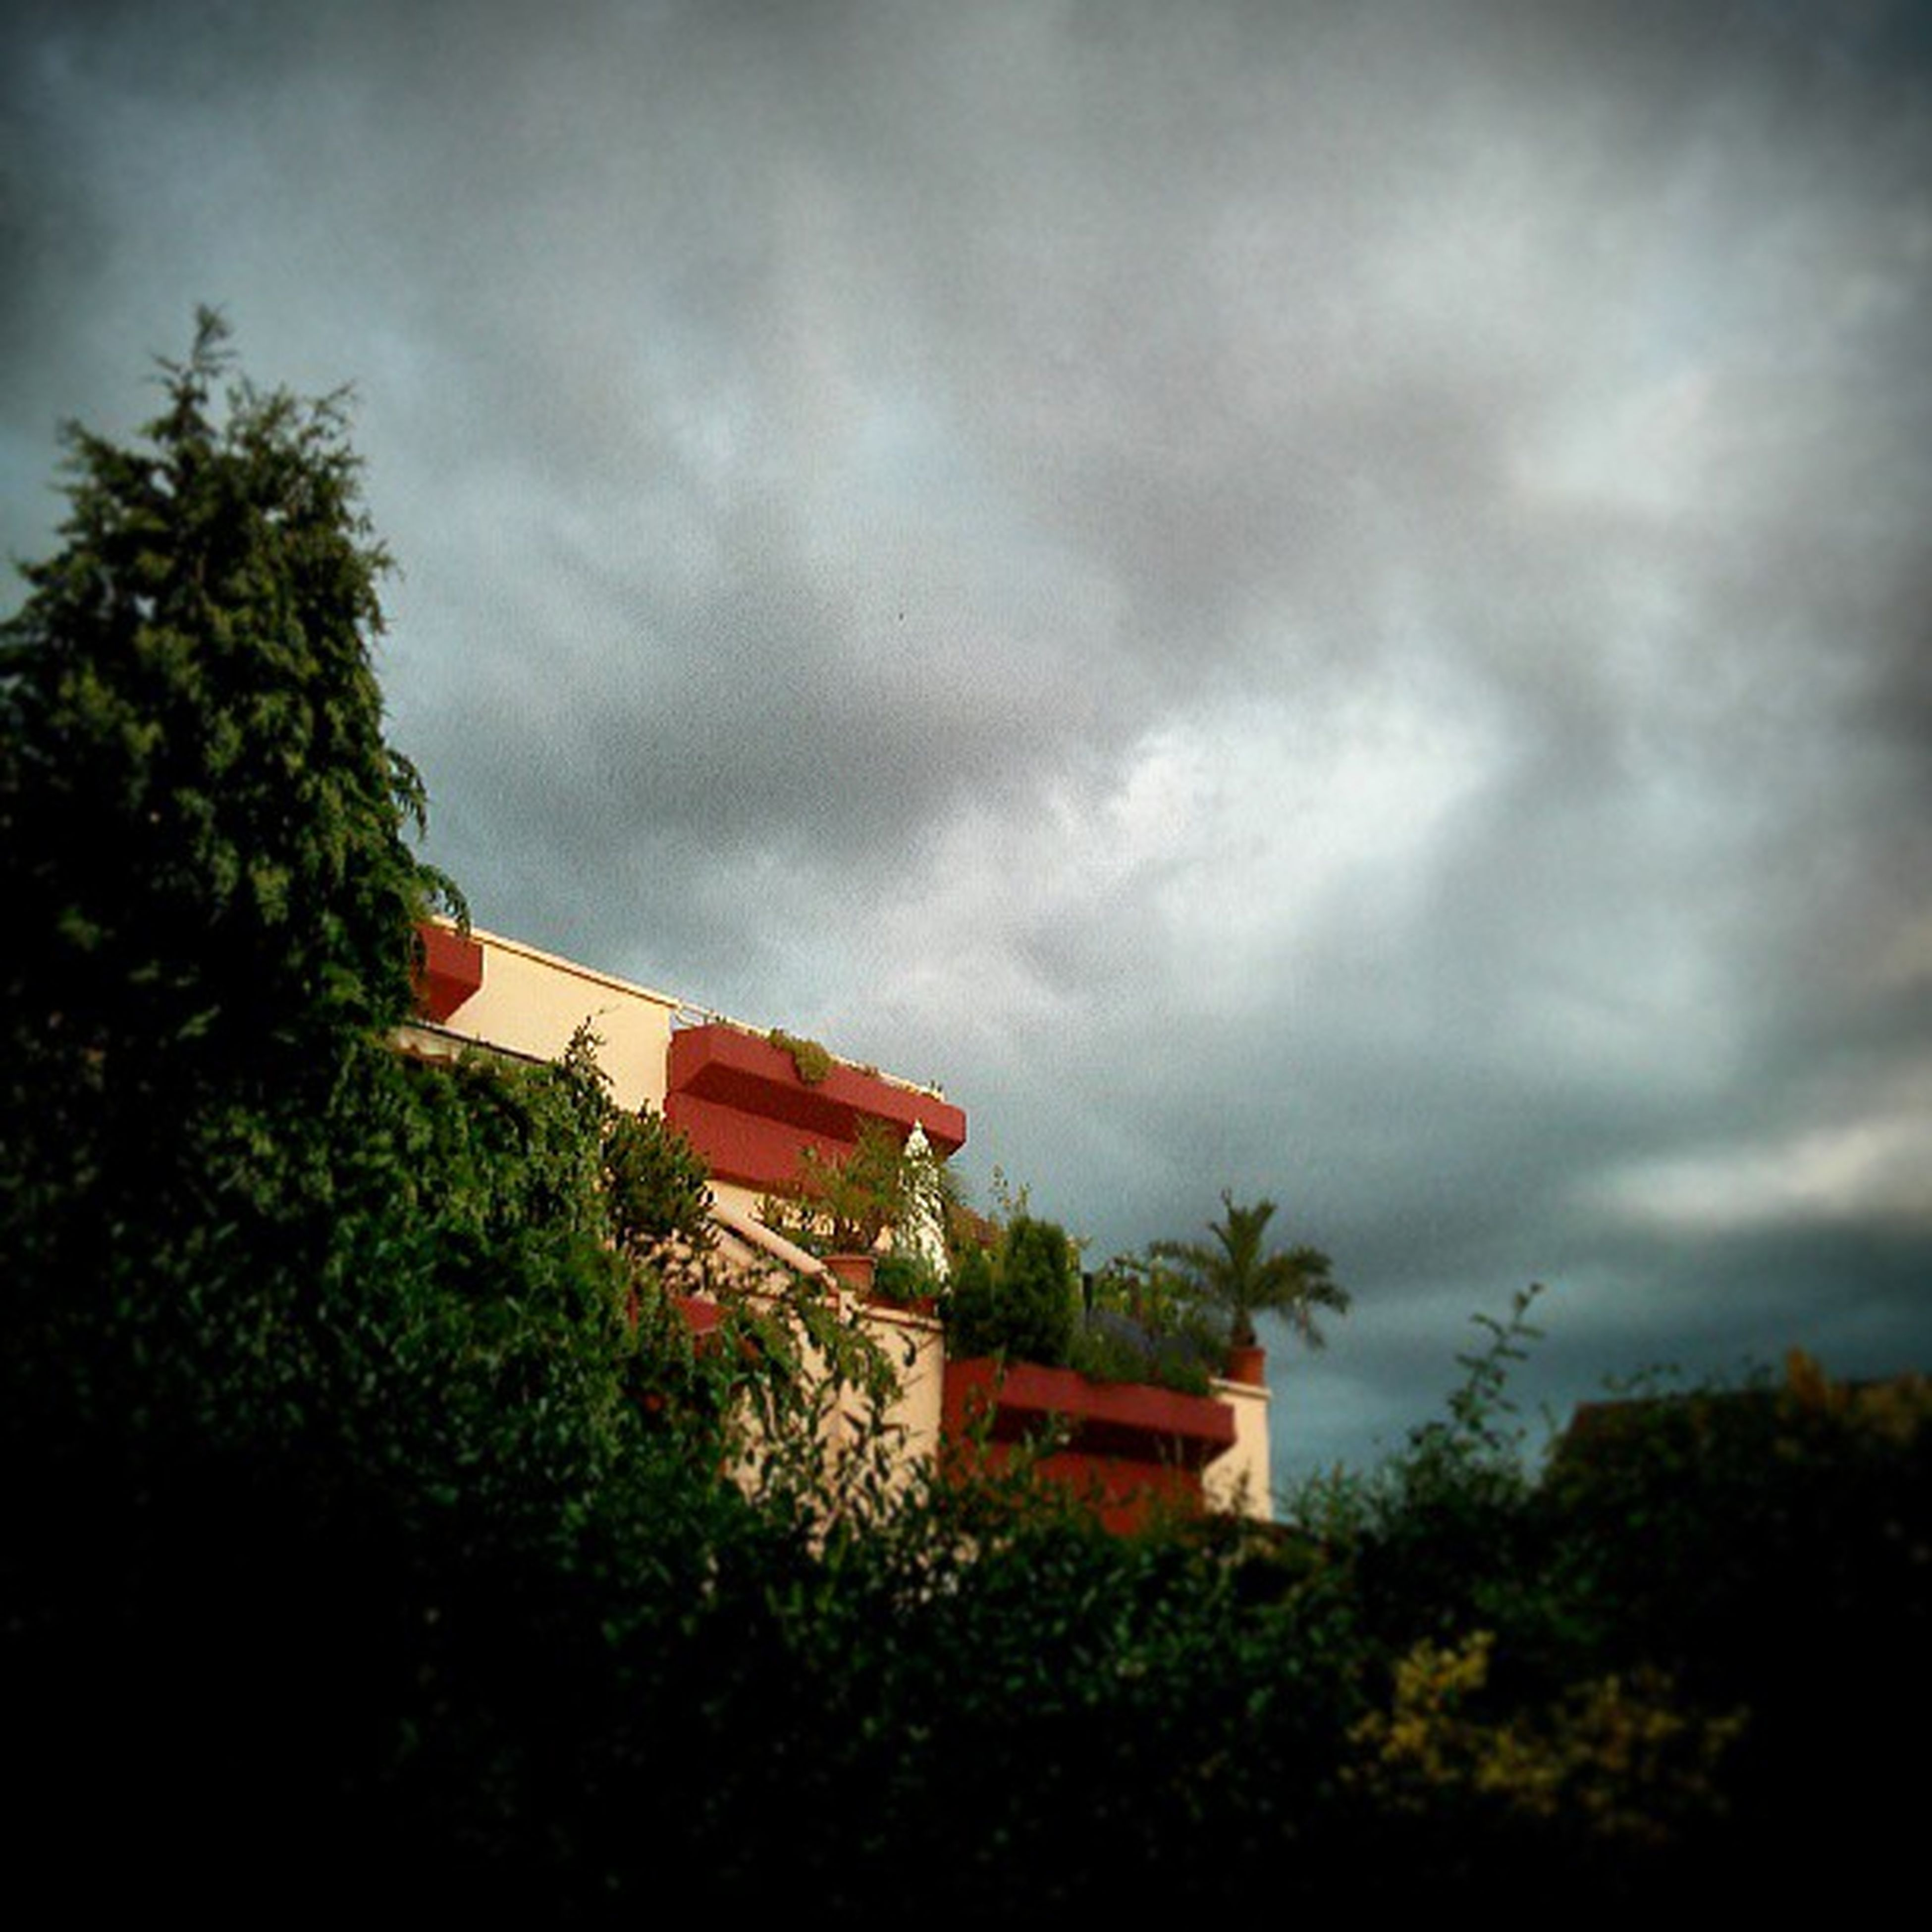 sky, building exterior, cloud - sky, cloudy, architecture, built structure, tree, weather, house, overcast, storm cloud, cloud, growth, nature, residential structure, green color, residential building, plant, low angle view, outdoors